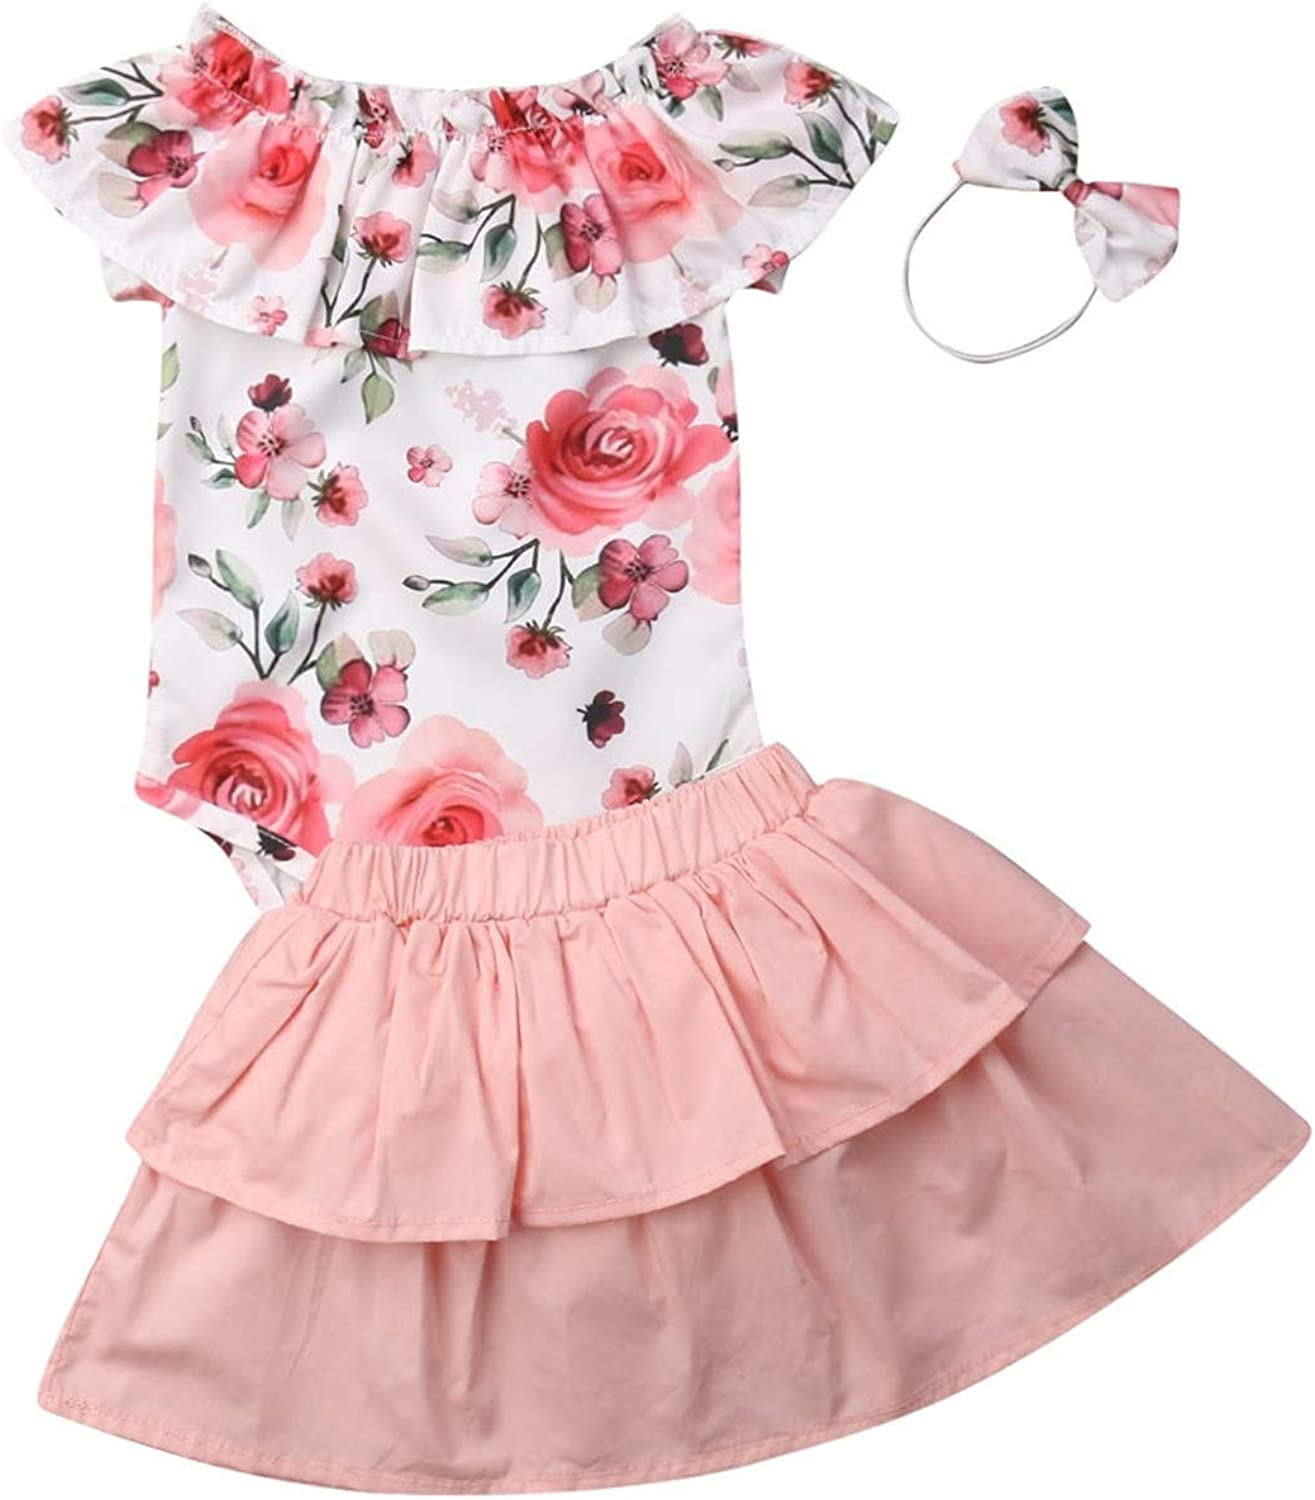 Newborn Baby Girls Floral Dress Clothes Romper Tops+Swing Skirt+Headband Outfits